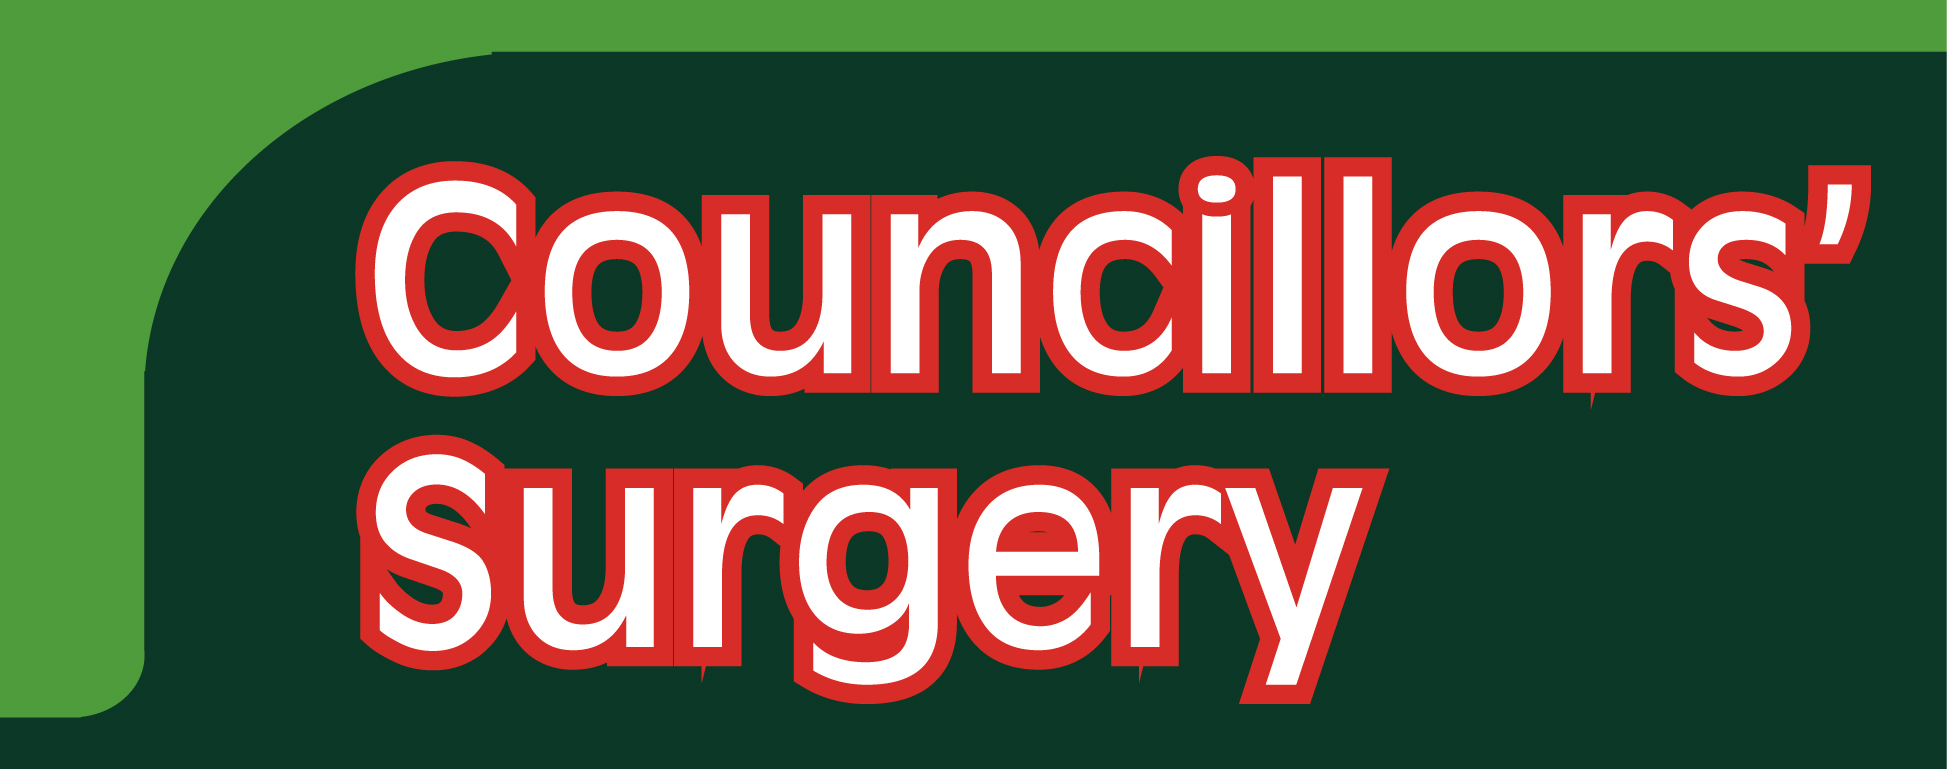 Councillors' Surgeries – Shafto, Central and Neville Ward